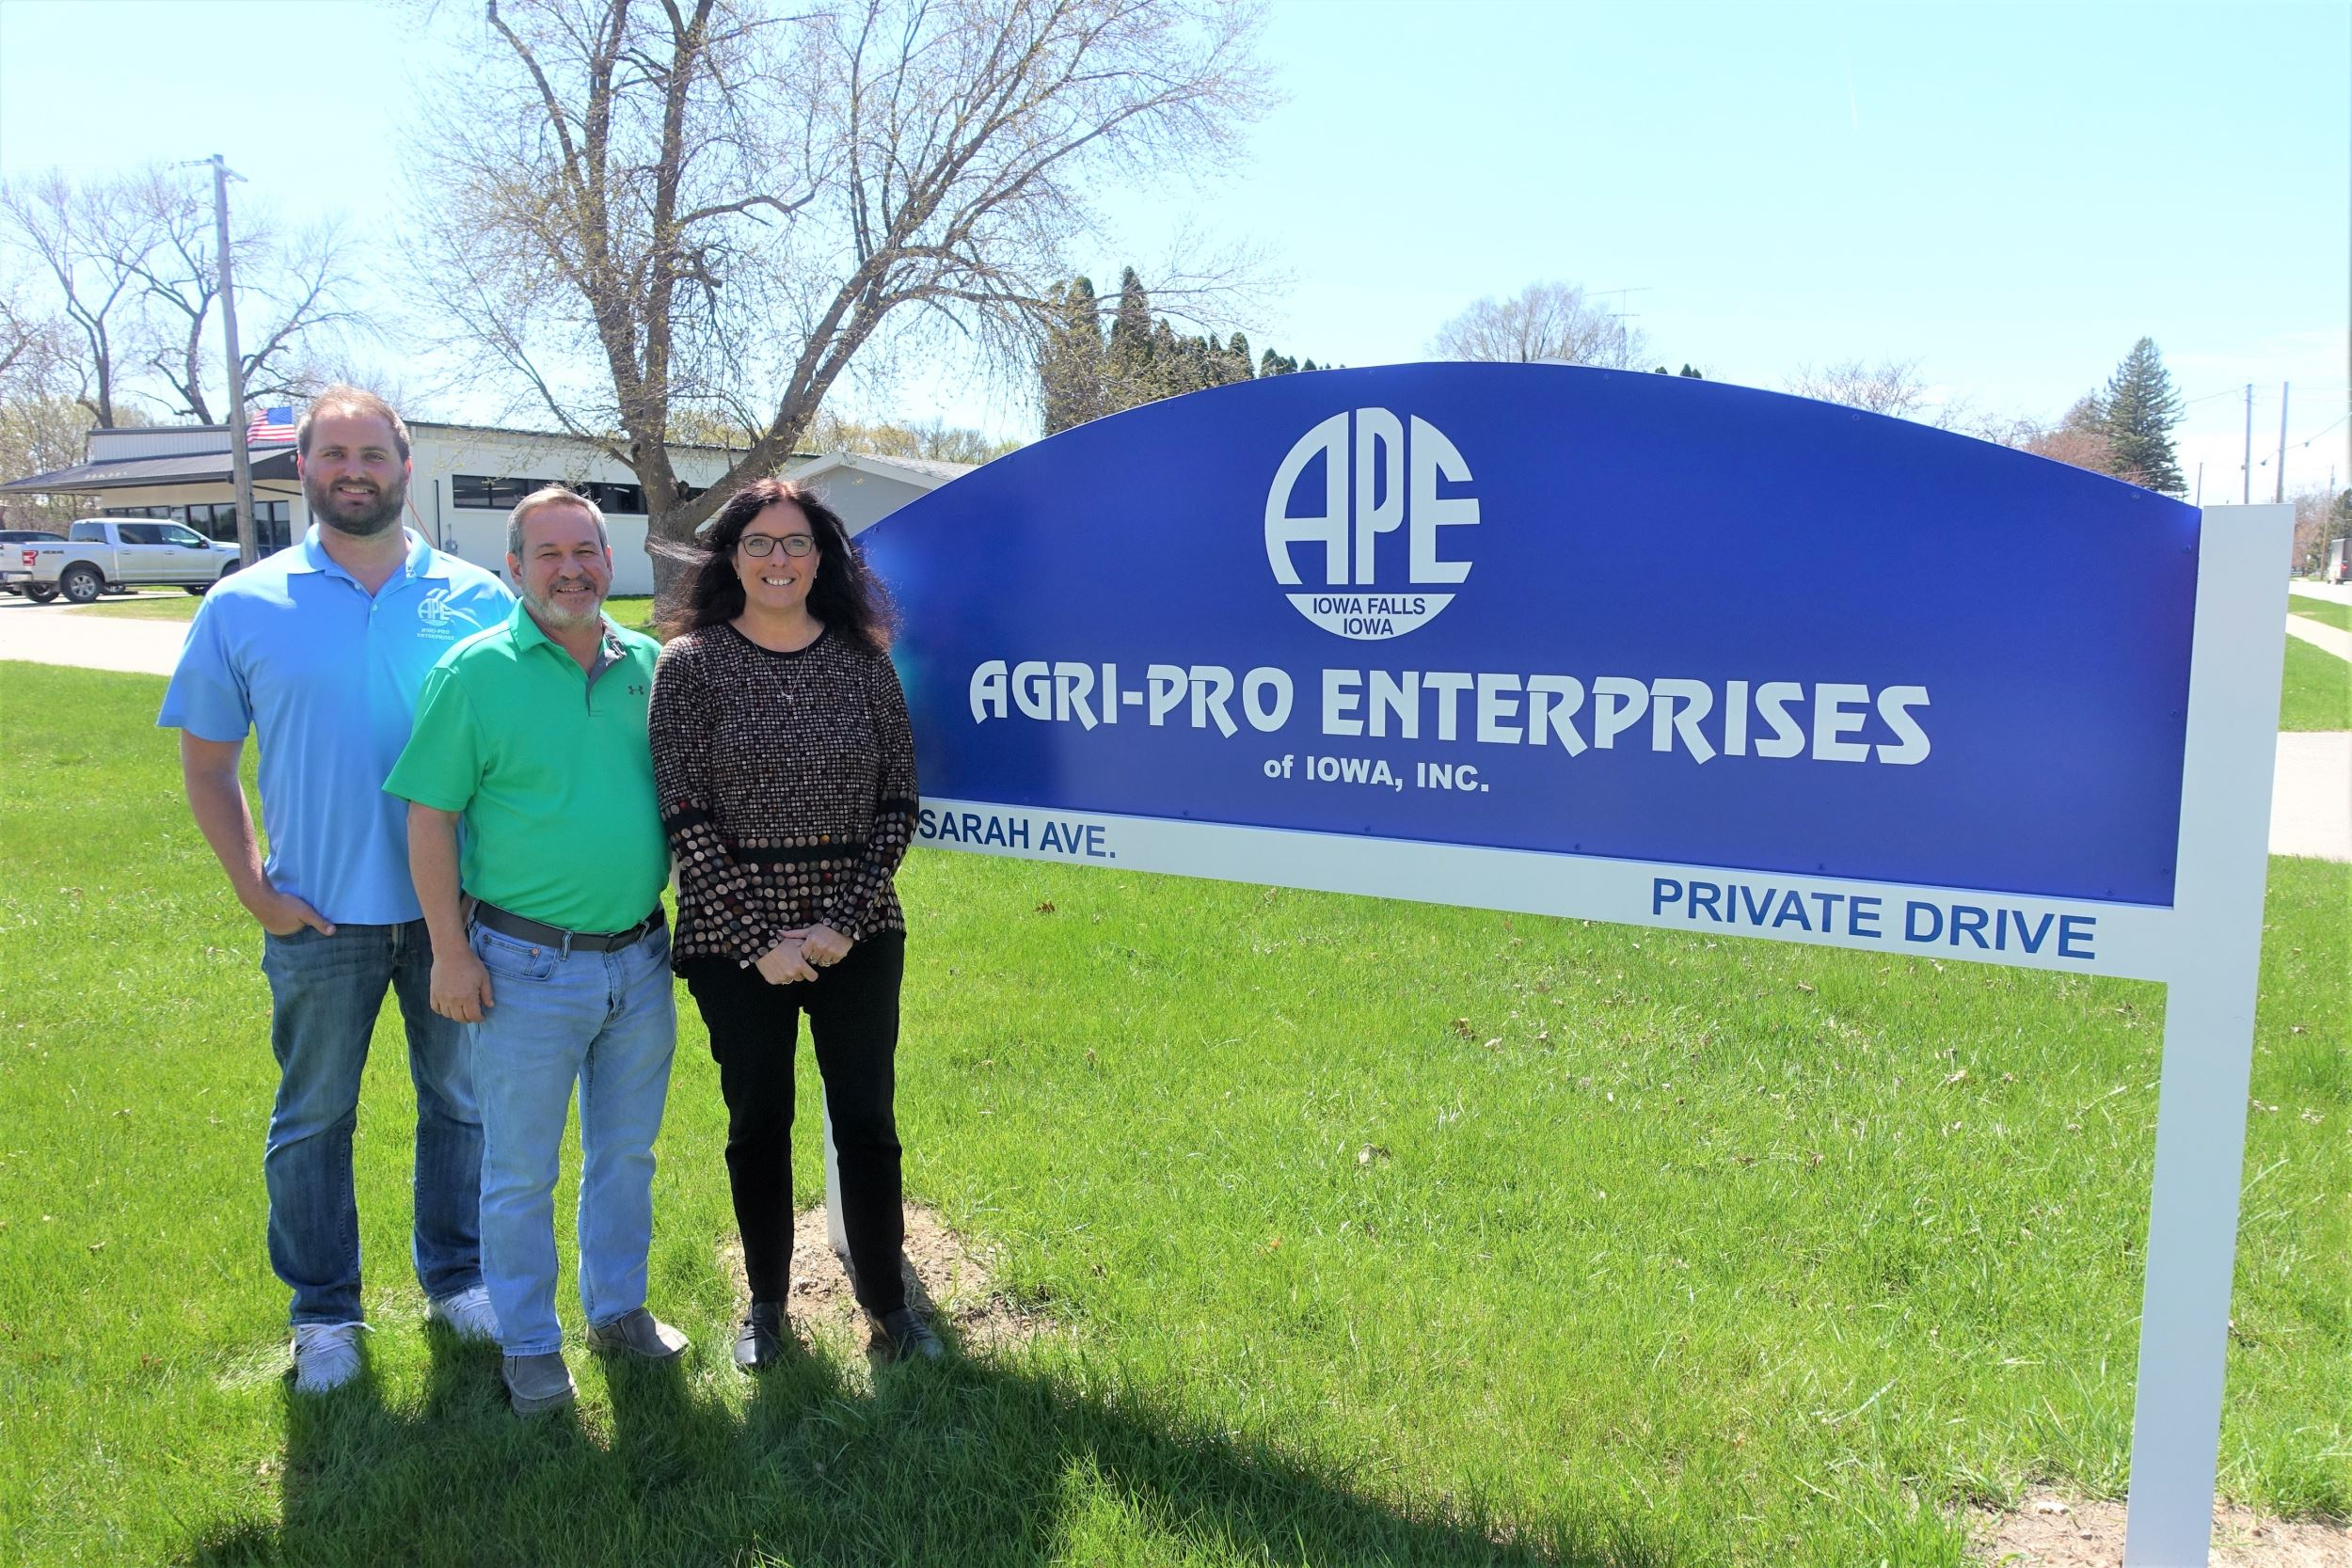 Matt, Joe, and Lari in front of Agri-Pro Enterprises